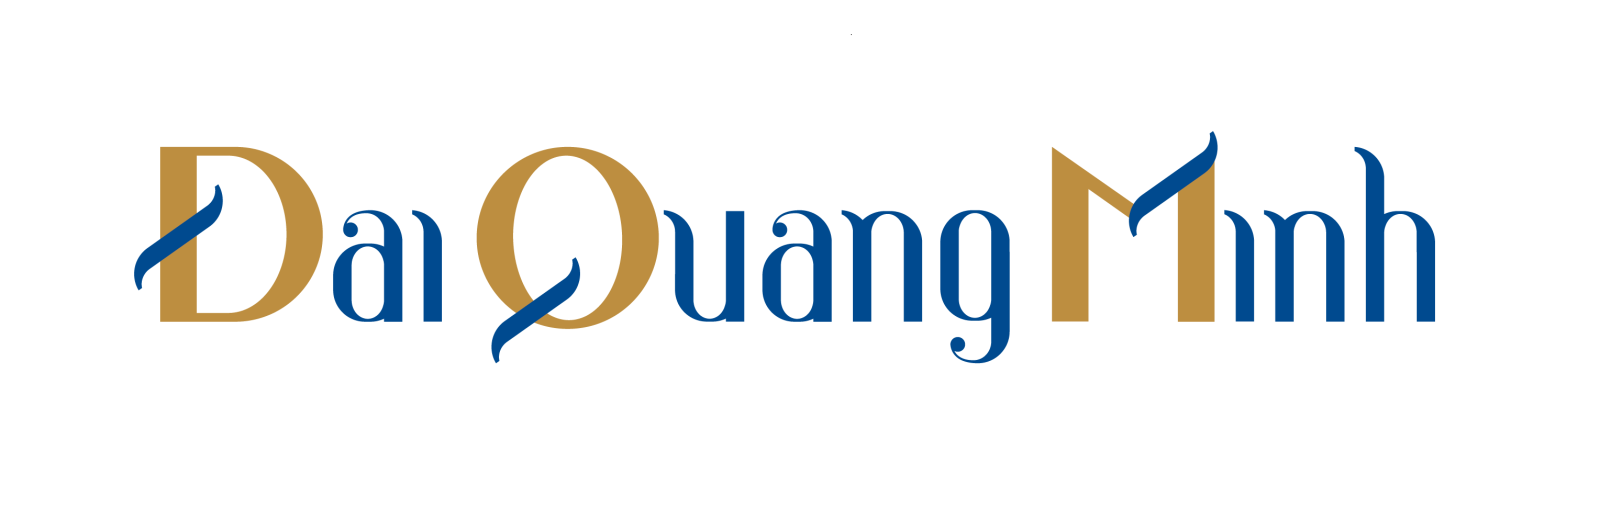 Dai Quang Minh Real Estate Investment Joint Stock Company